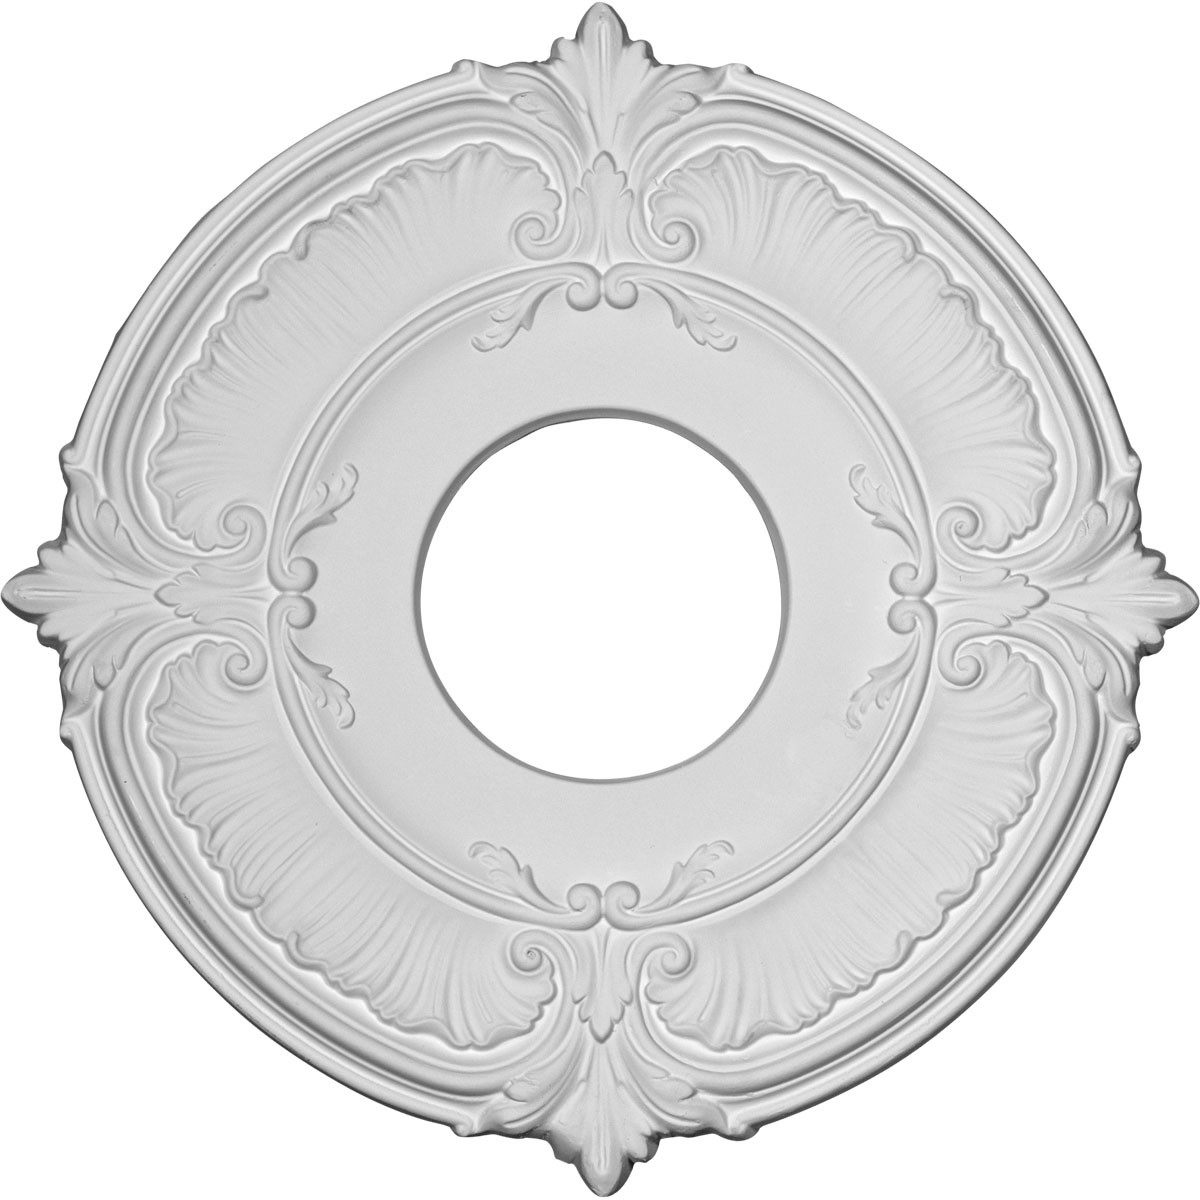 """EM-CM12AT - 12 3/4""""OD x 3 1/2""""ID x 1/2""""P Attica Ceiling Medallion (Fits Canopies up to 3 1/2"""")"""